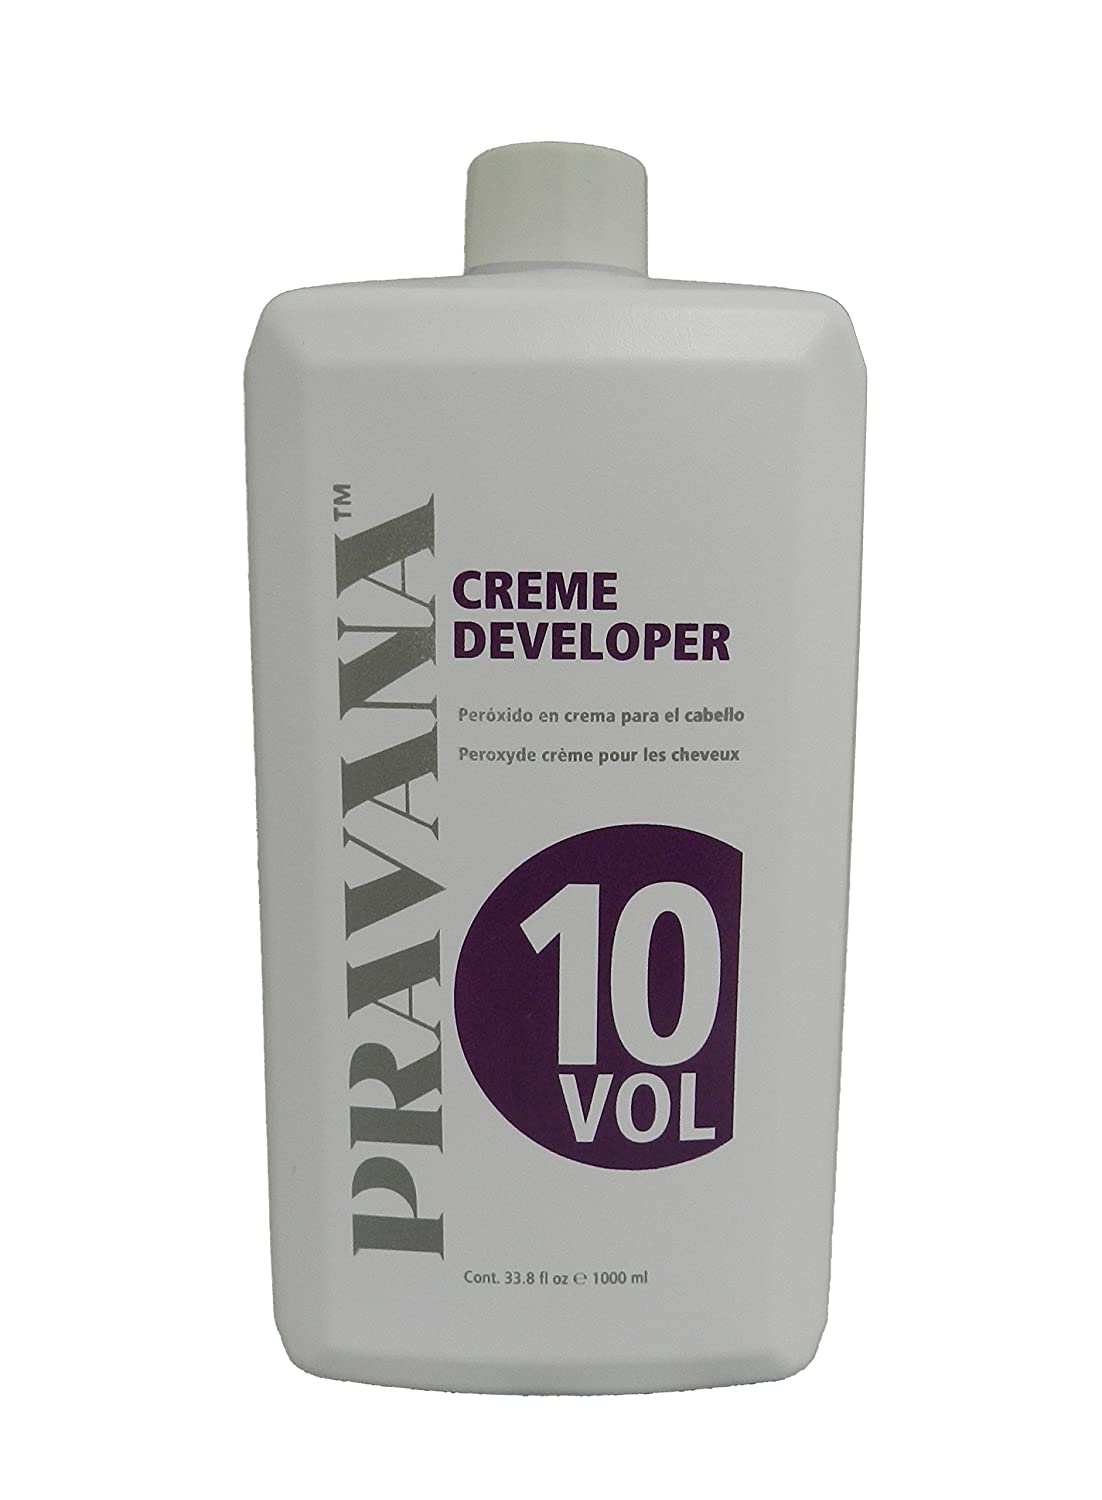 Pravana Creme Developers (10 Volume 33.8 fl oz) by Pravana